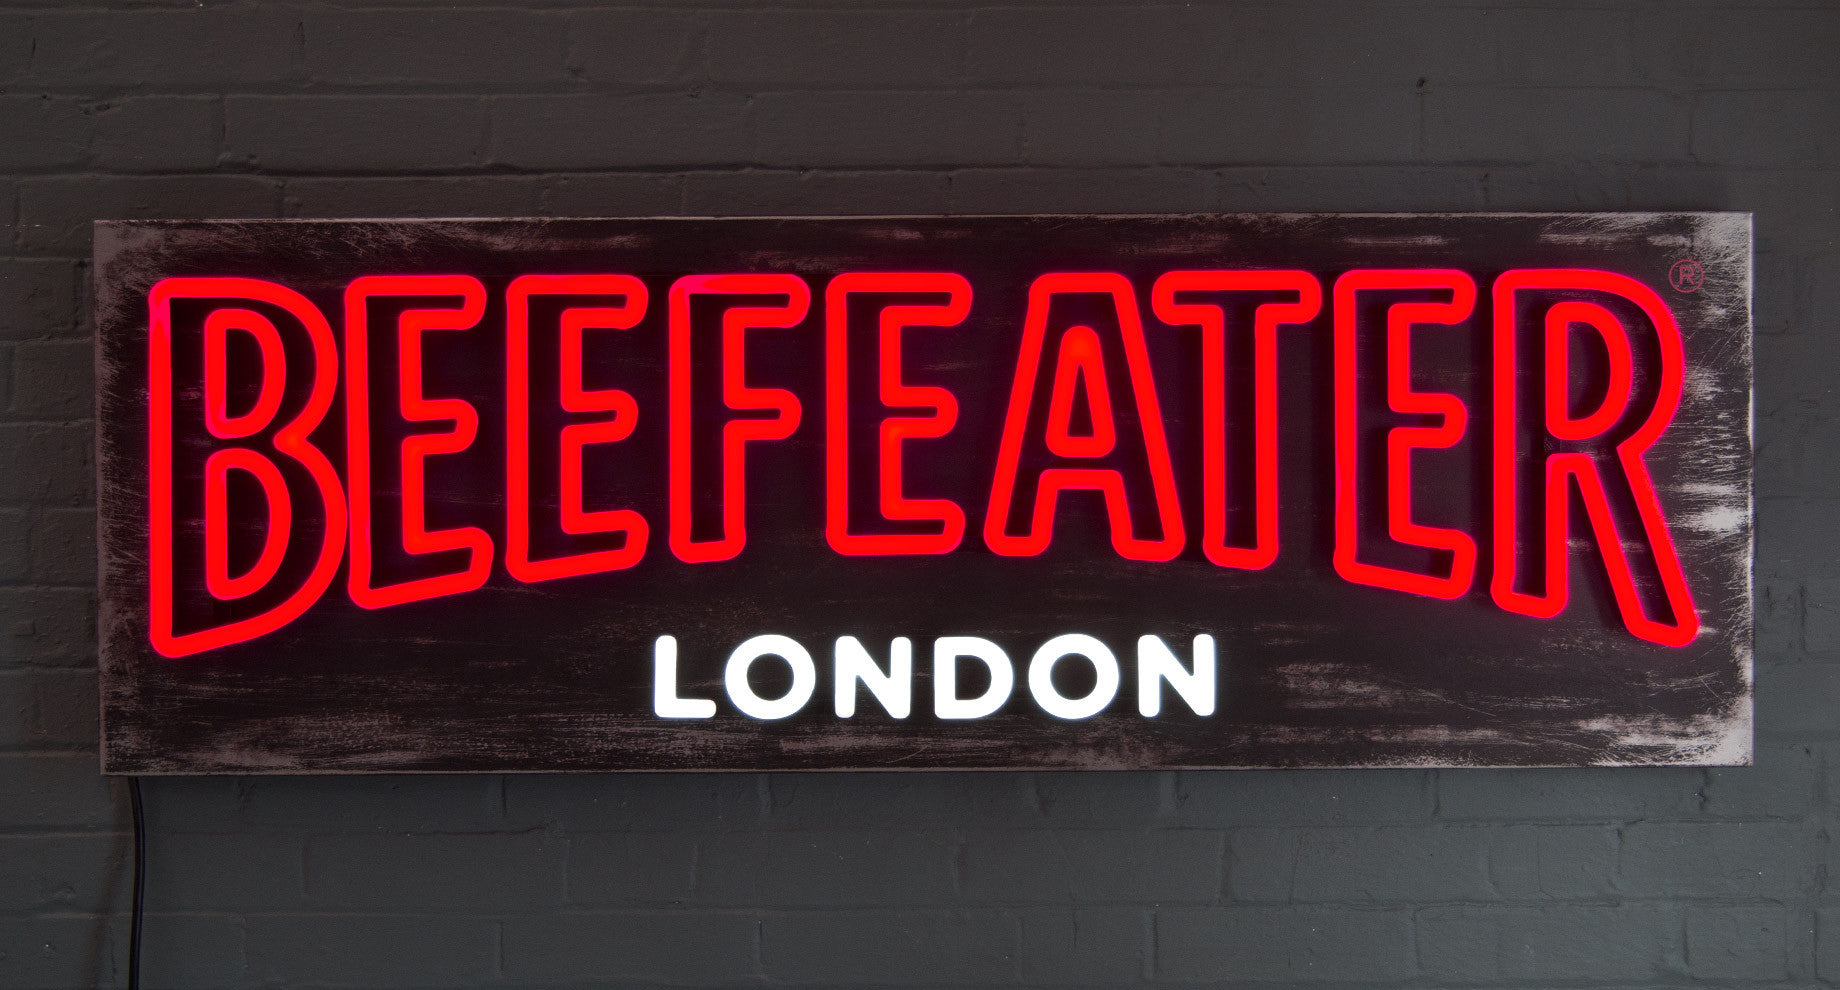 Beefeater LED neon sign